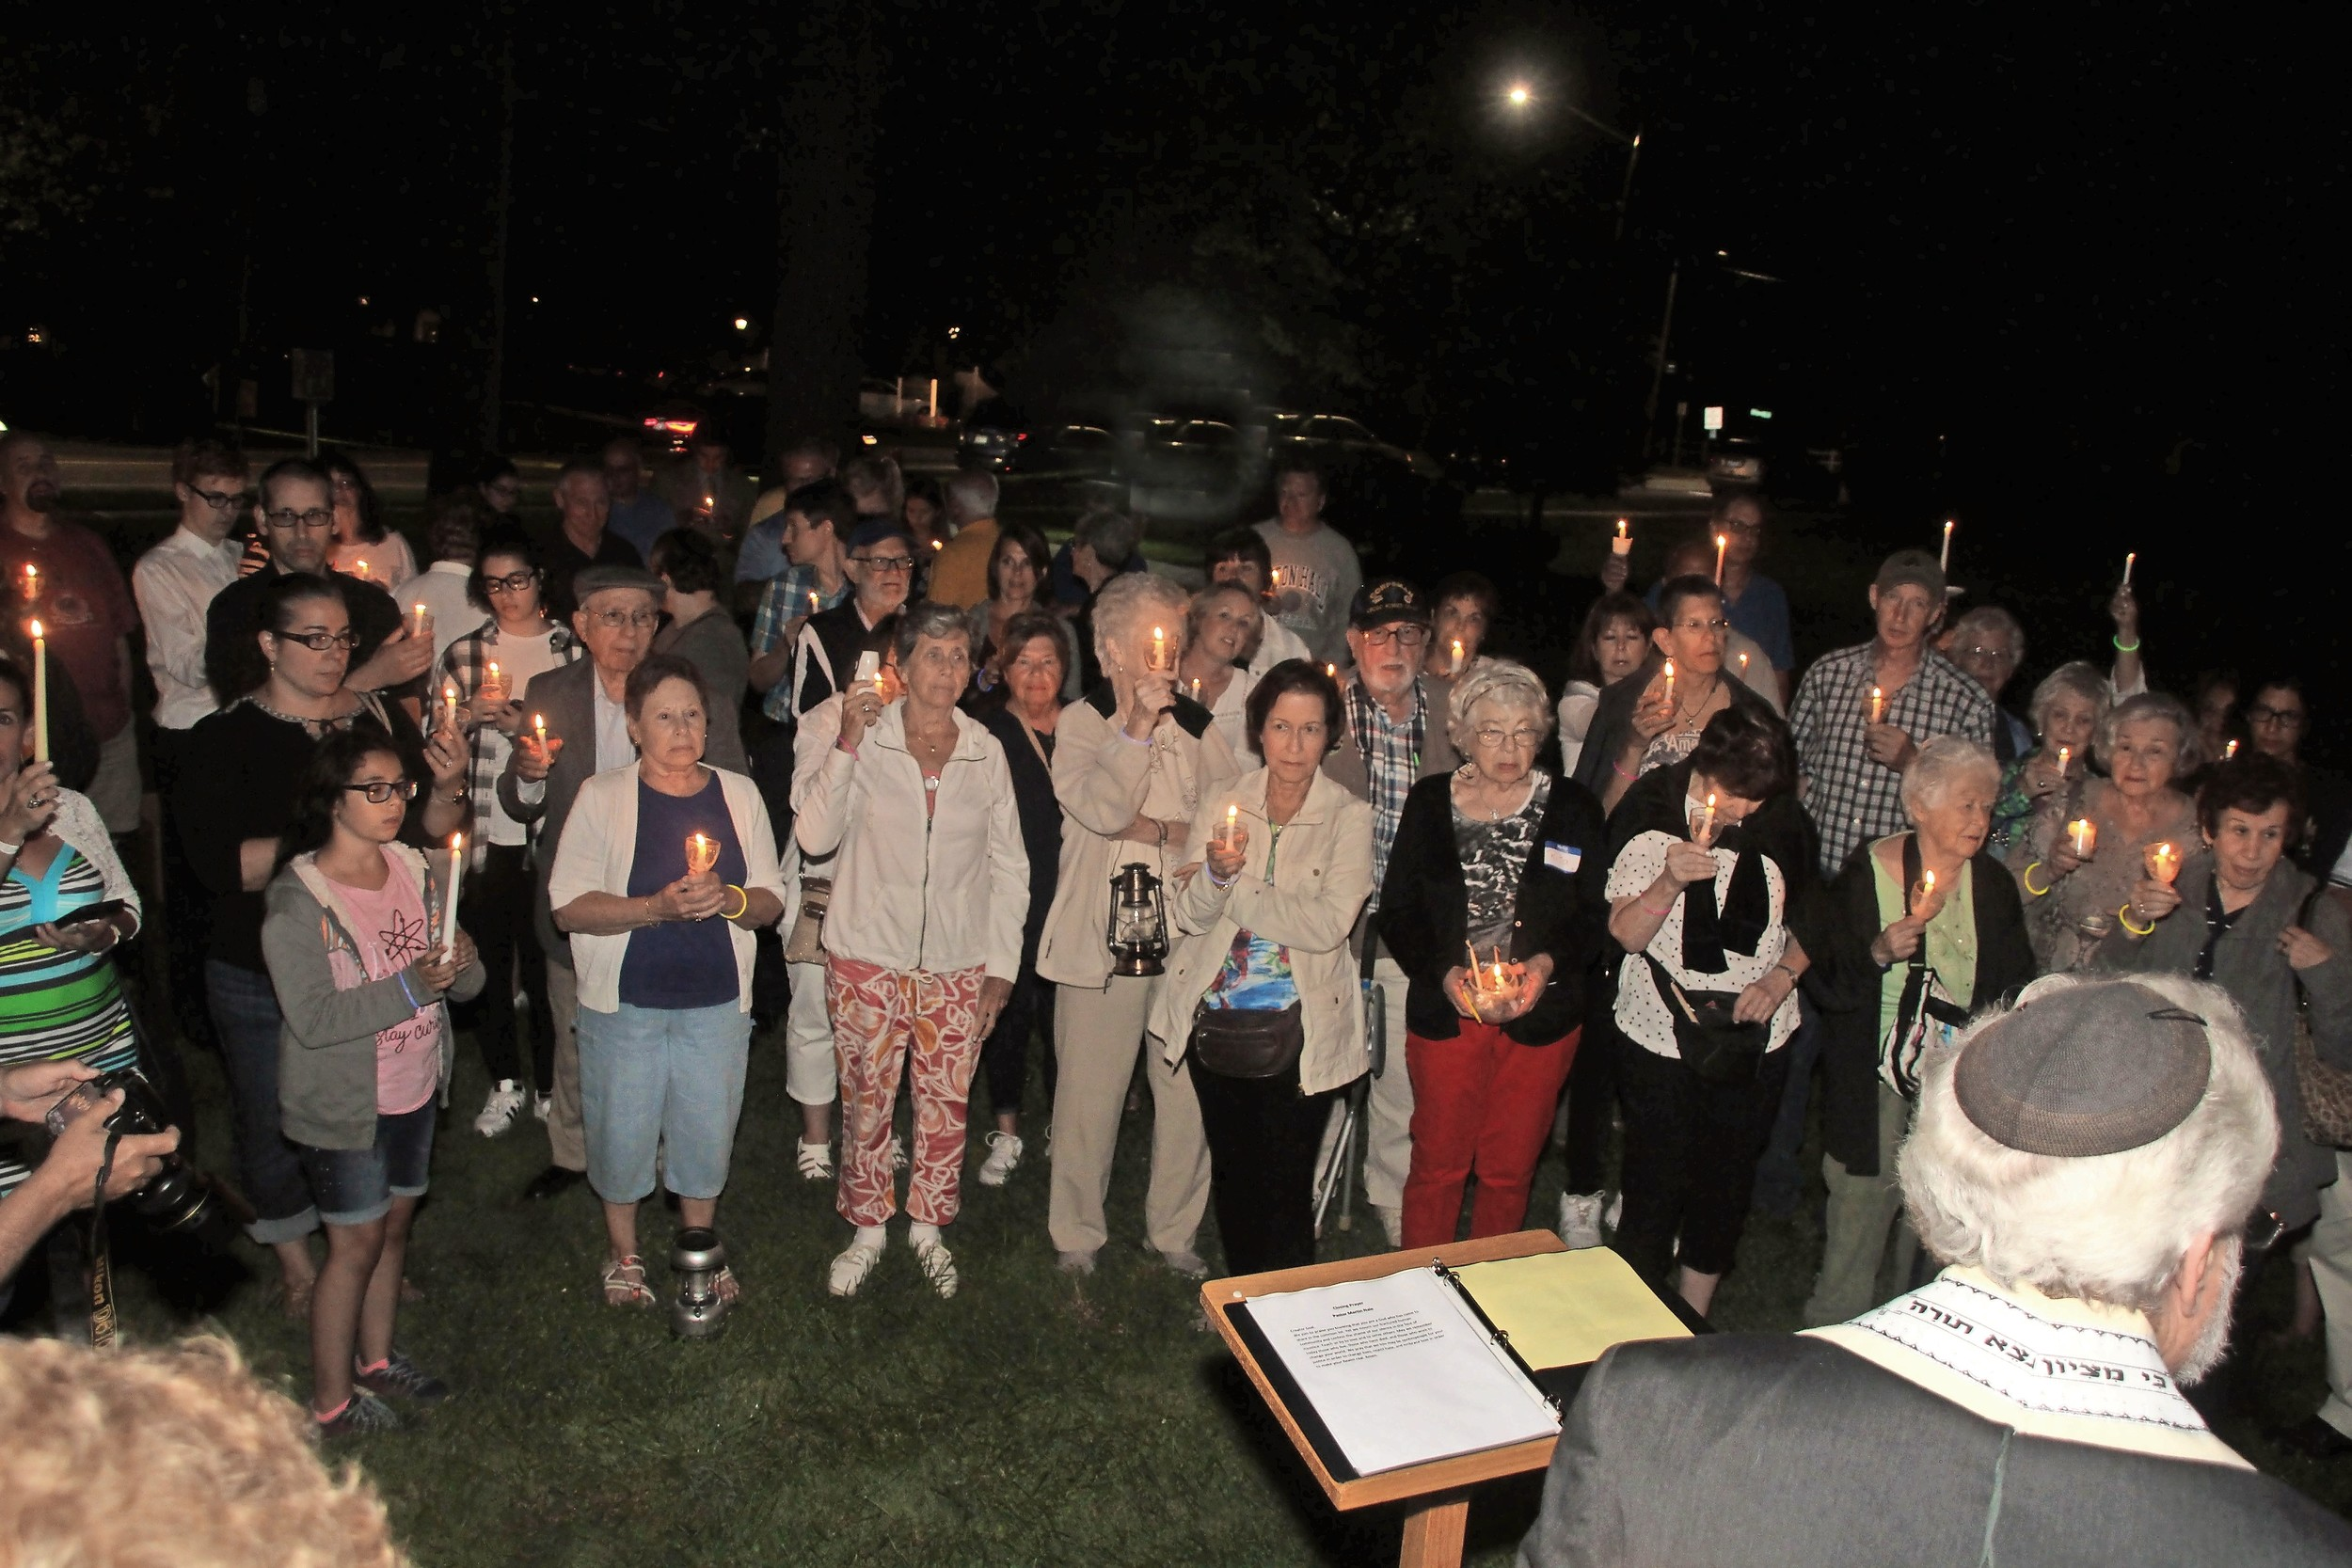 About 100 residents of Wantagh, Seaford, Bellmore, East Meadow and Levittown joined religious leaders at Wantagh Memorial Congregational Church on Aug. 26 for a vigil against hate, bigotry and prejudice.